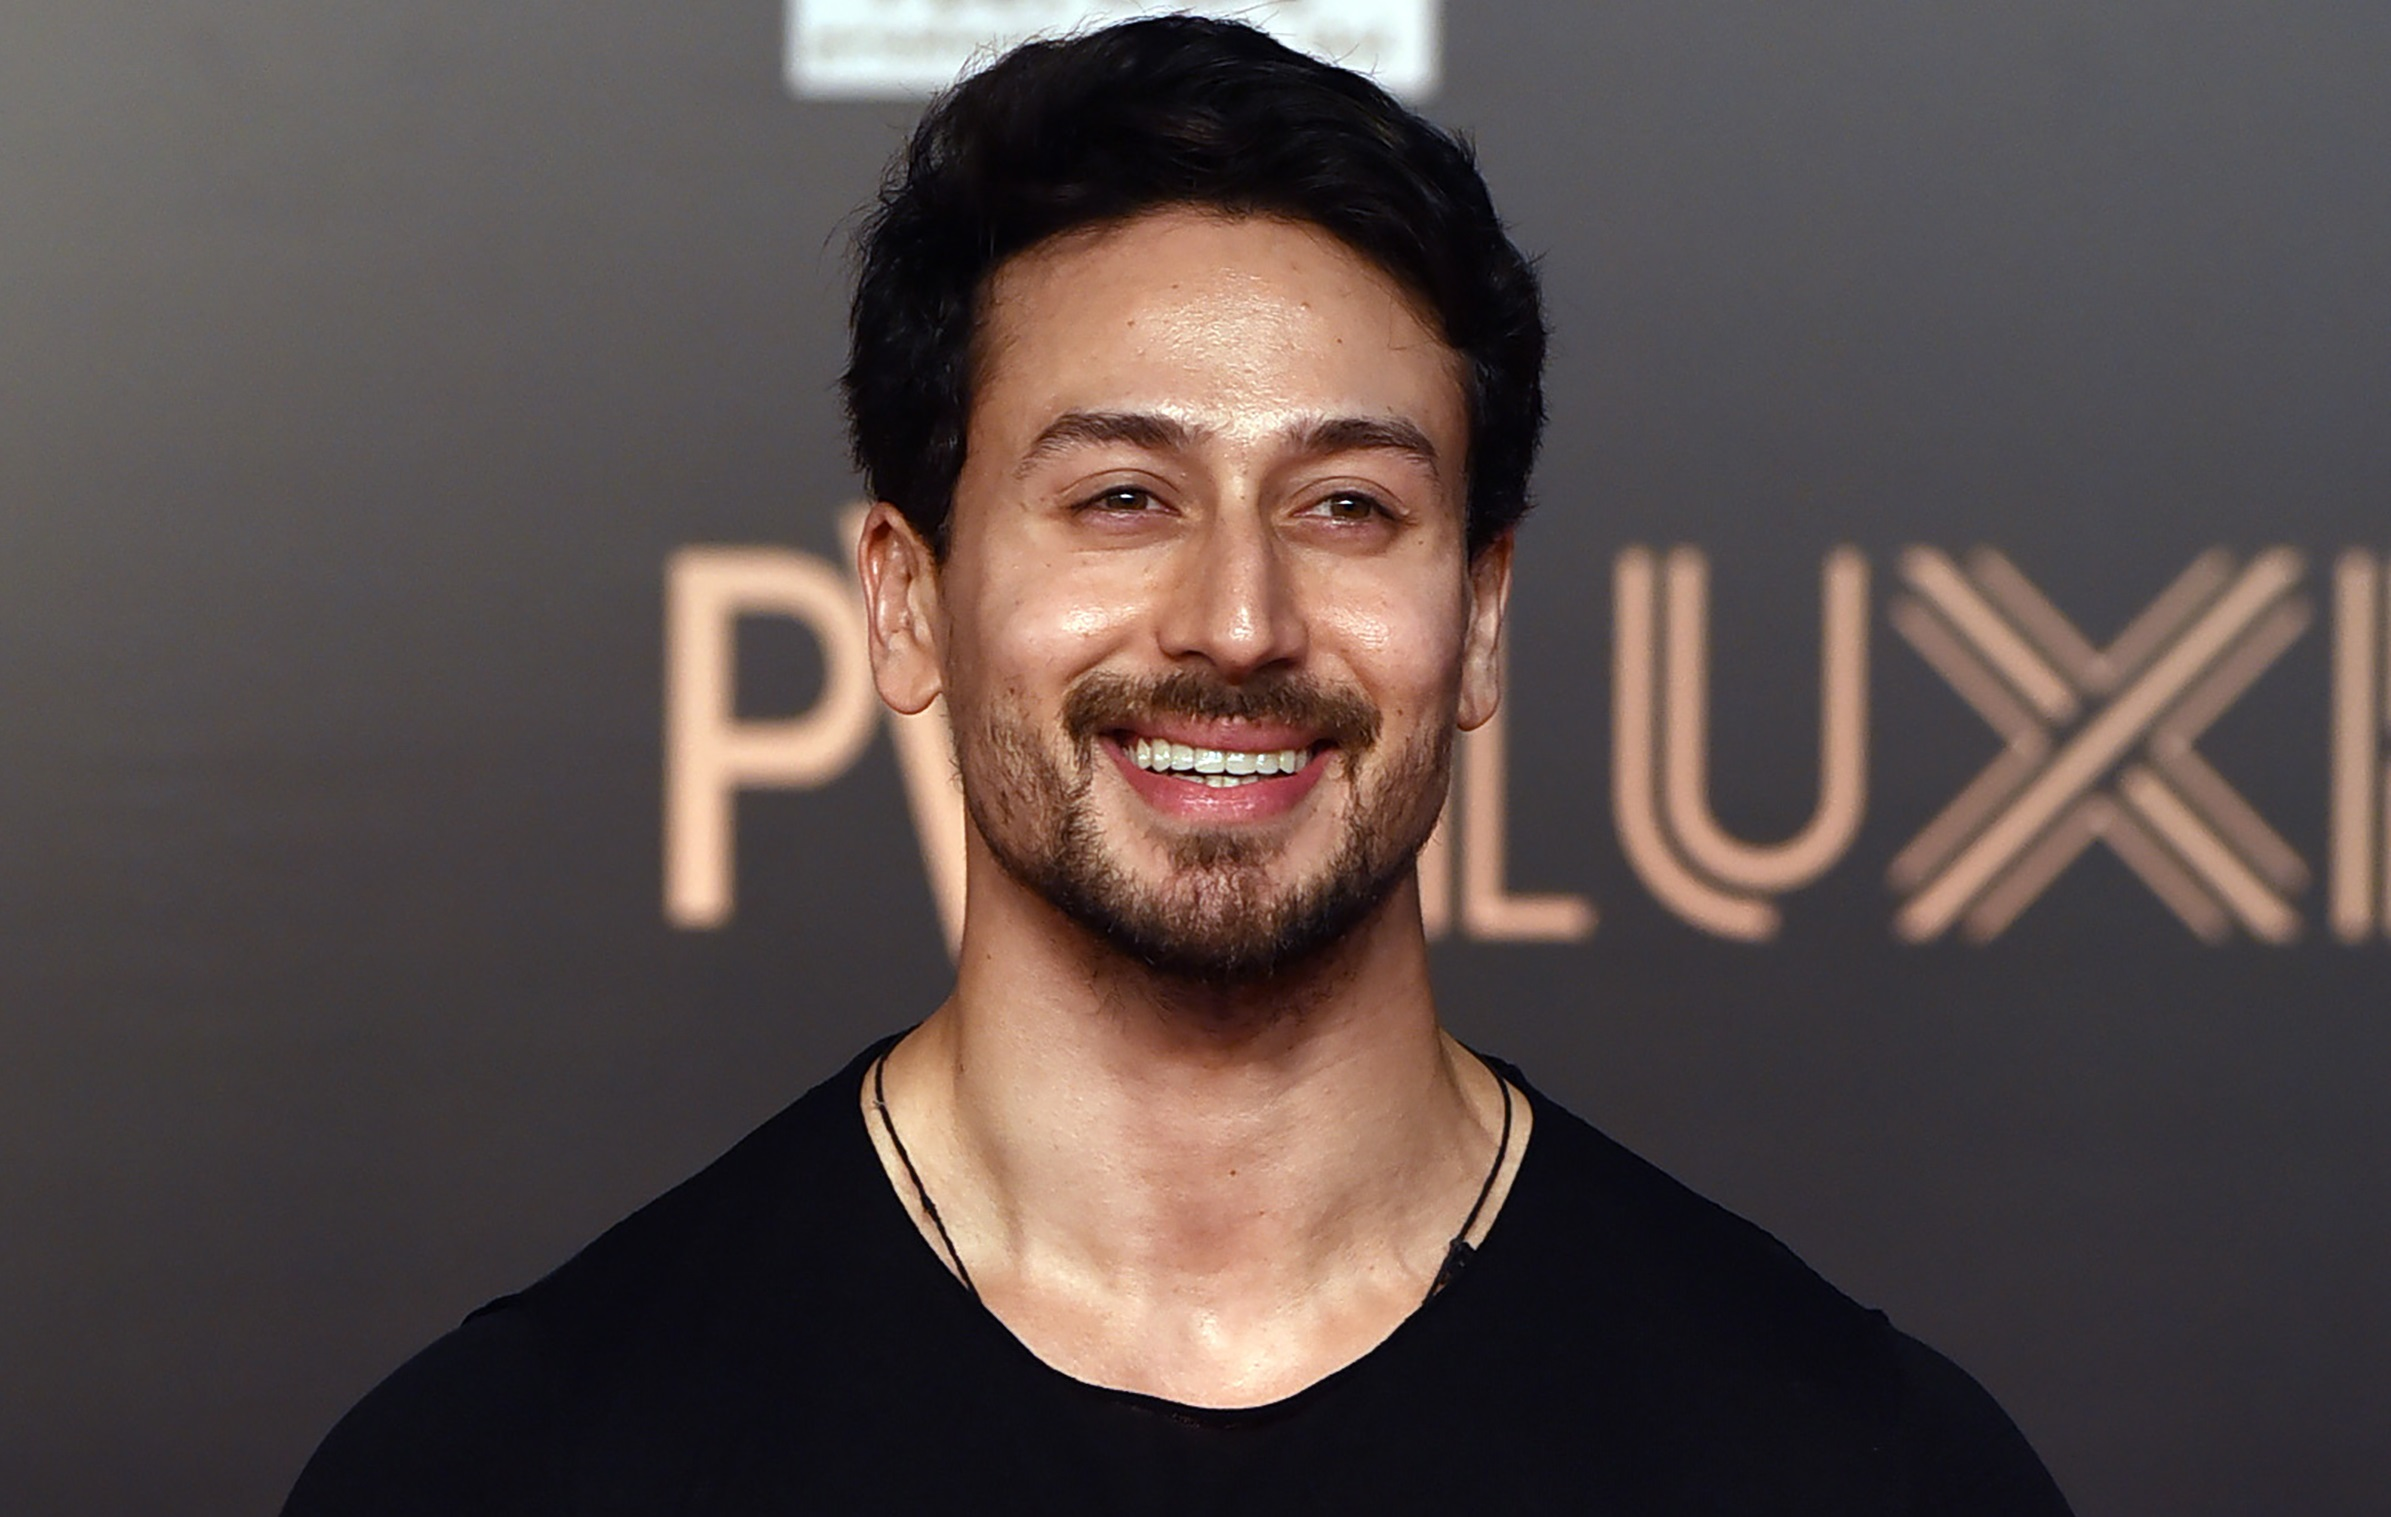 Tiger Shroff (Photo by SUJIT JAISWAL/AFP via Getty Images)